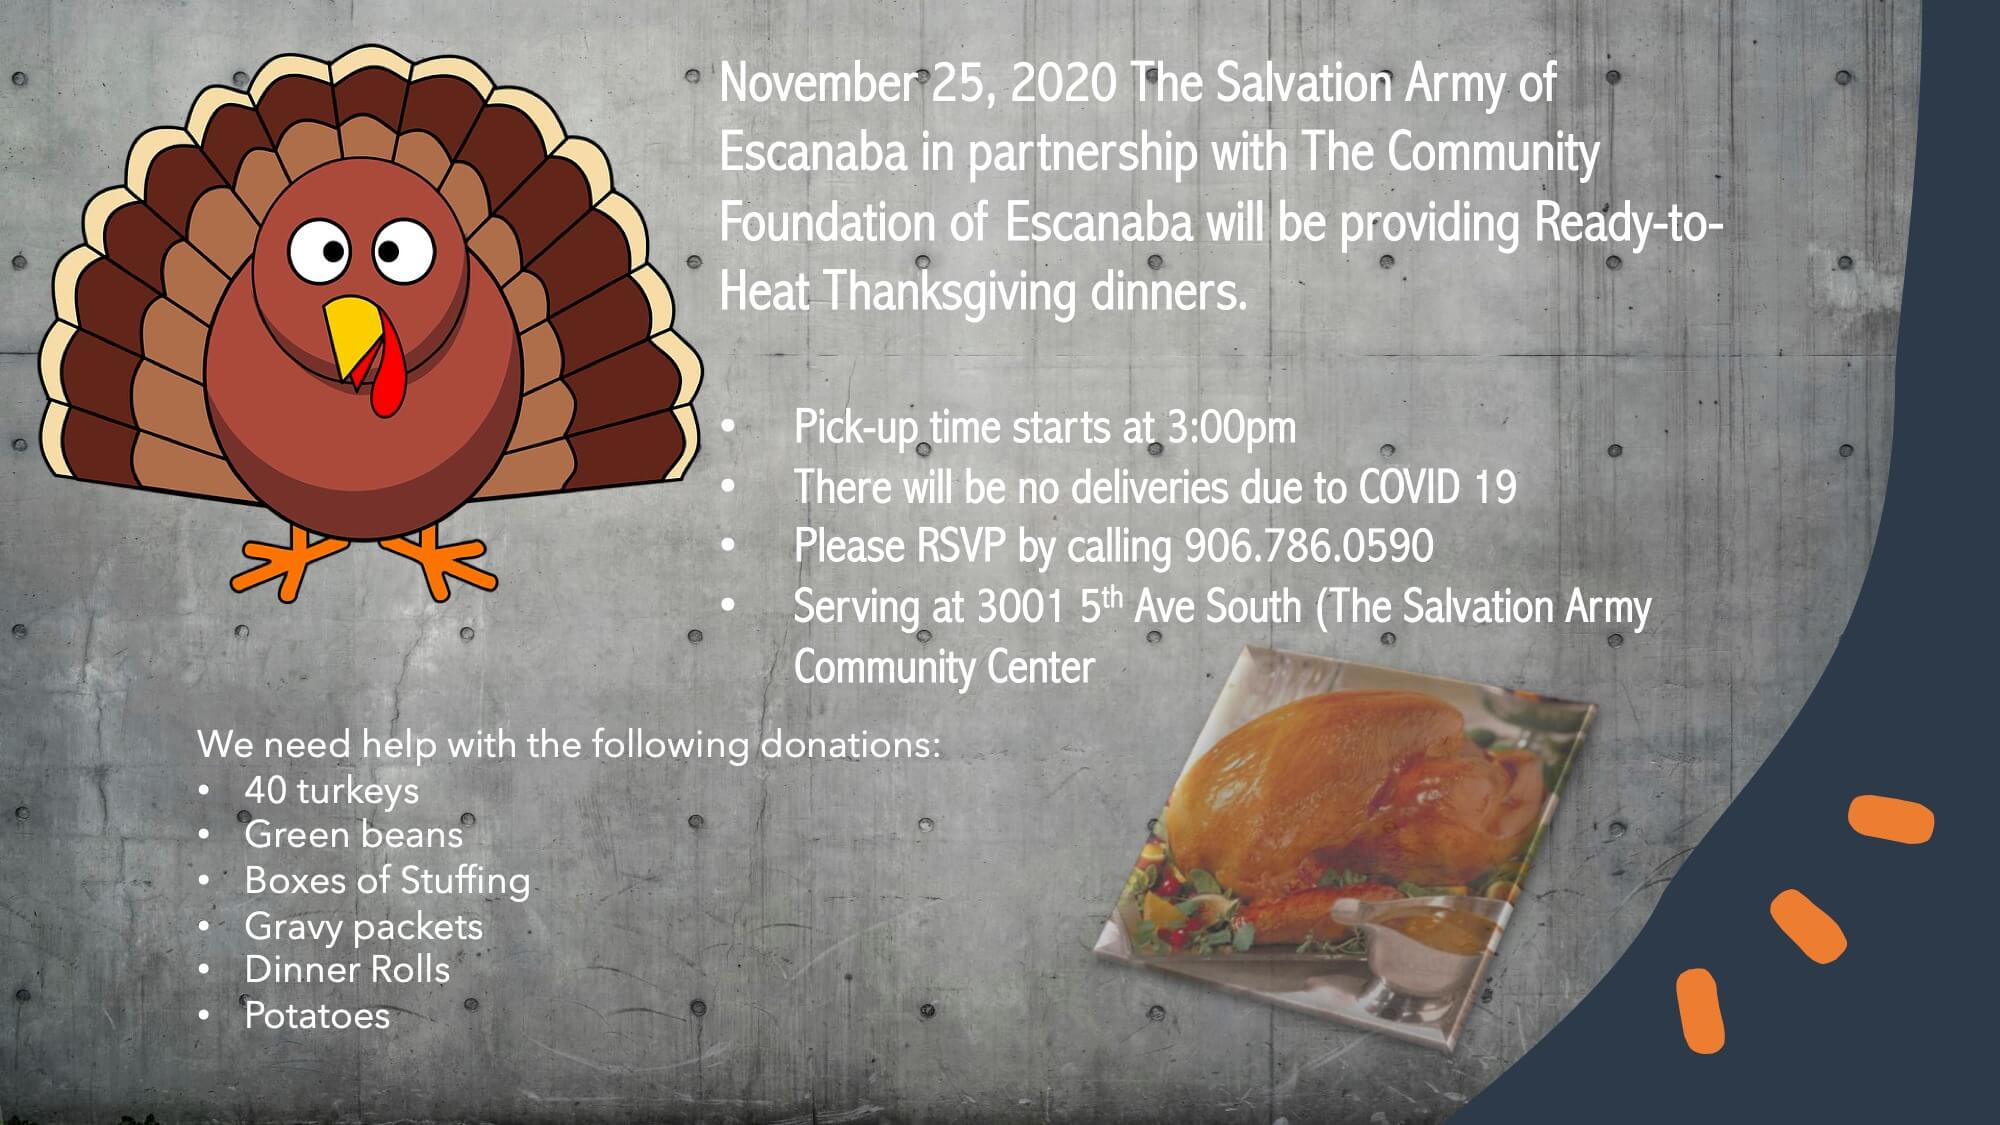 November 25, 2020 The Salvation Army of Escandaba in partnership with the Community Foundation of Escanaba will be providing Ready-to-Heat Thanksgiving dinners. Pick-up times starts at 3pm. There will be no deliveries due to vovid